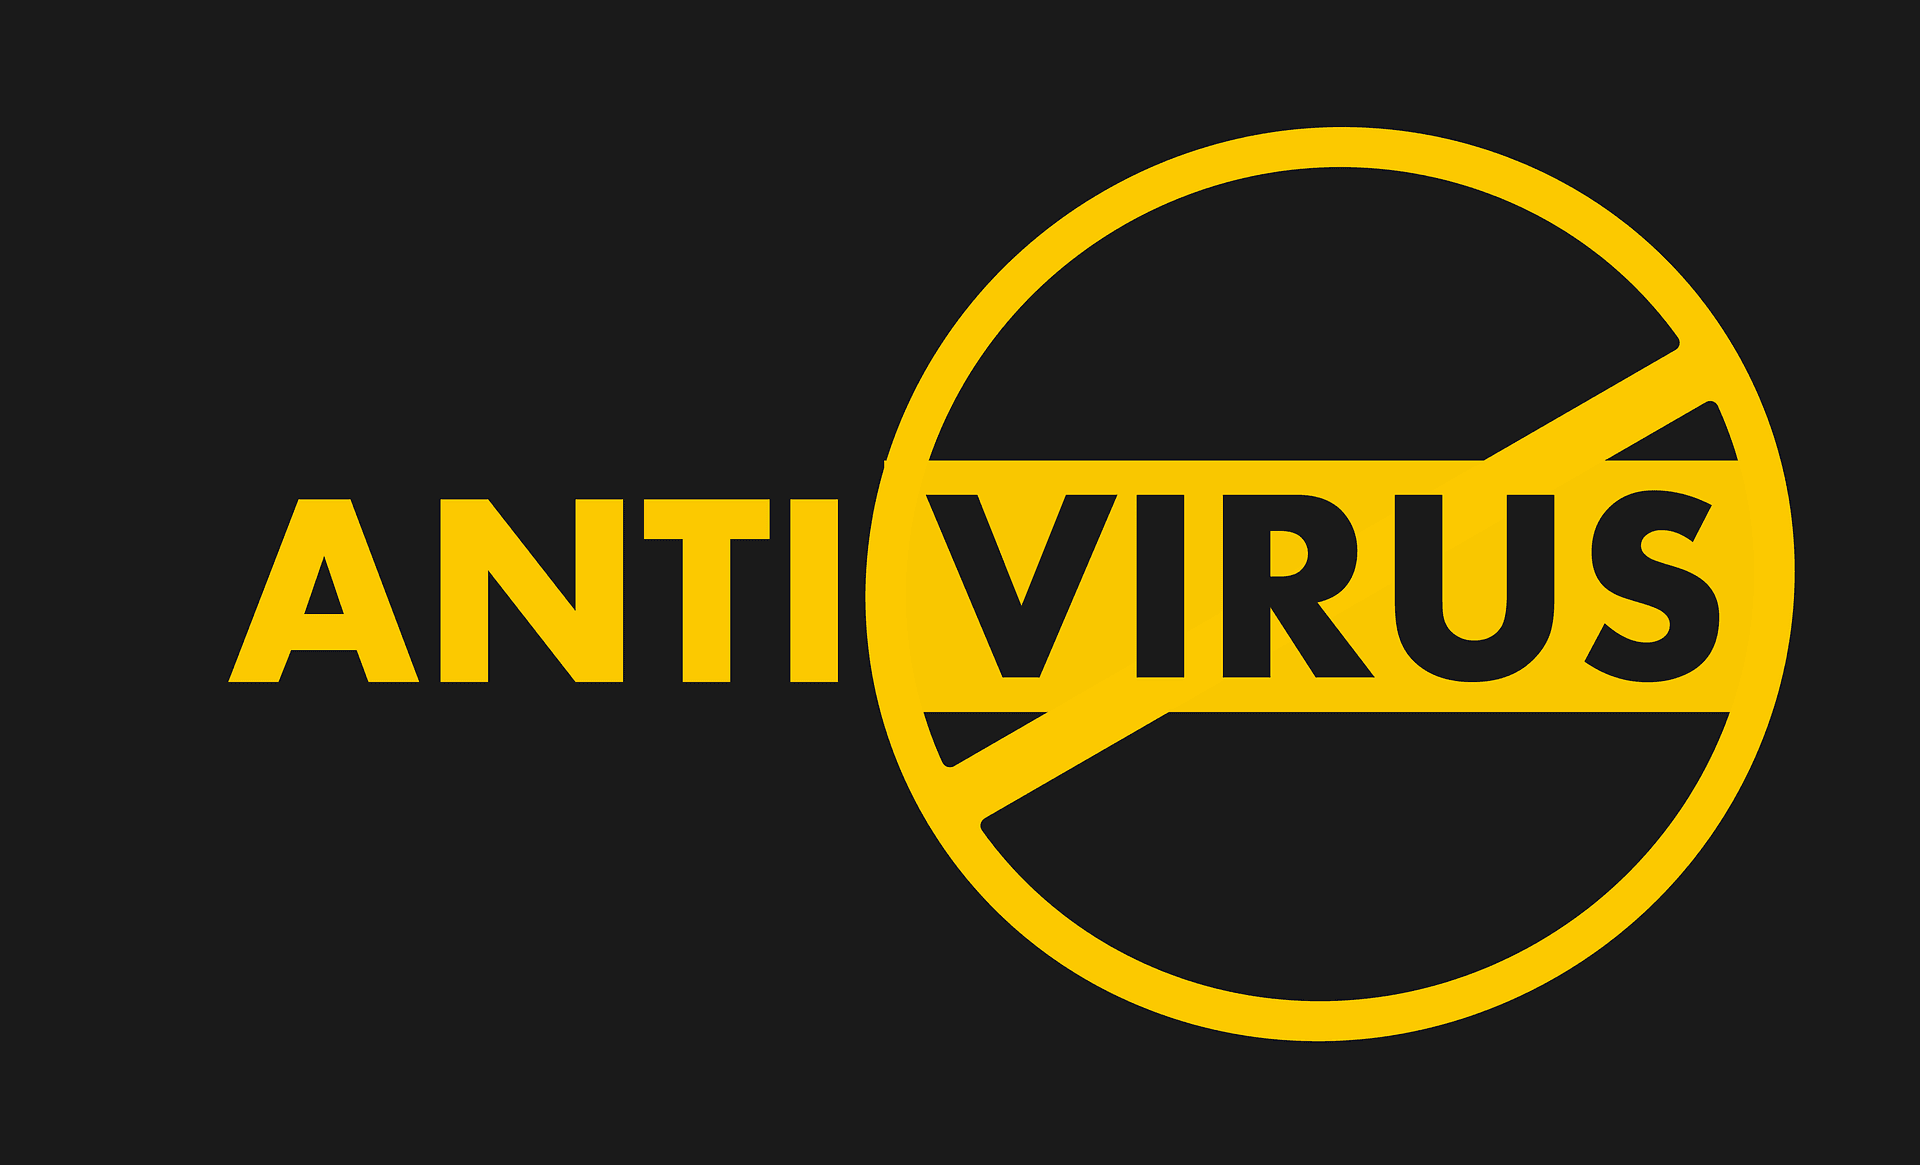 godt antivirus program